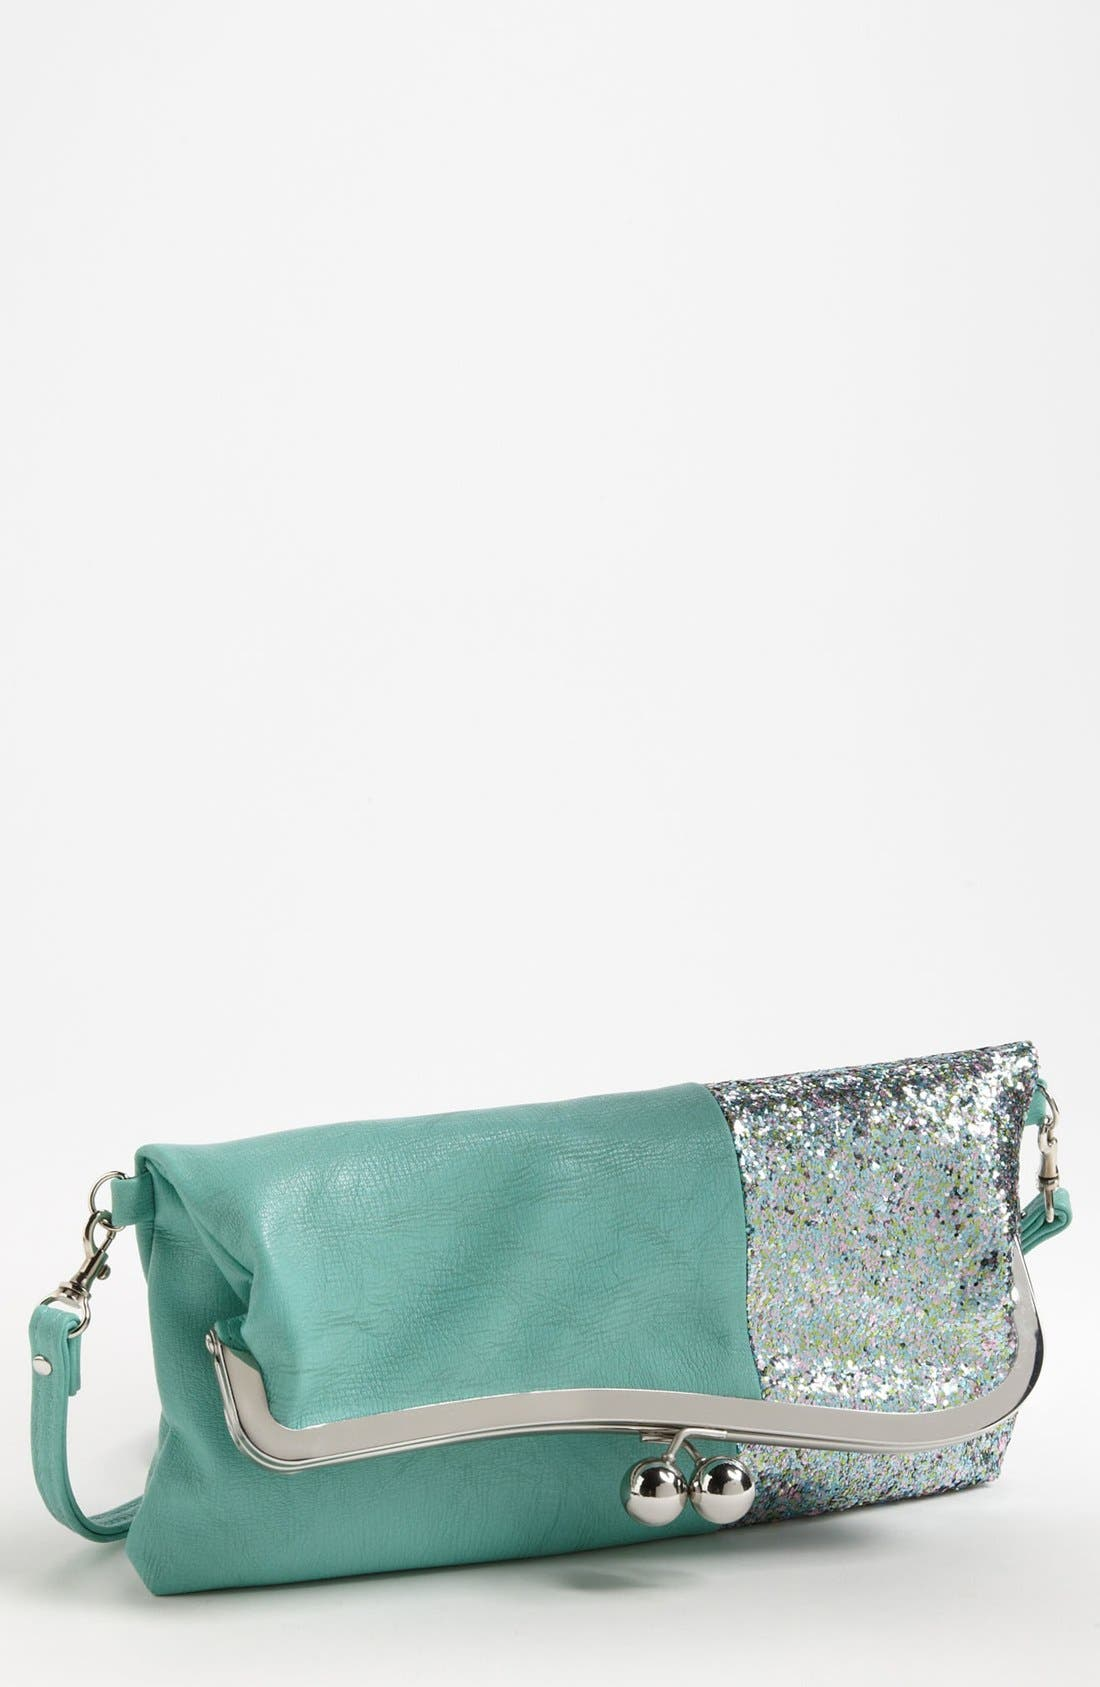 Alternate Image 1 Selected - Jessica Simpson 'Stella' Framed Foldover Clutch